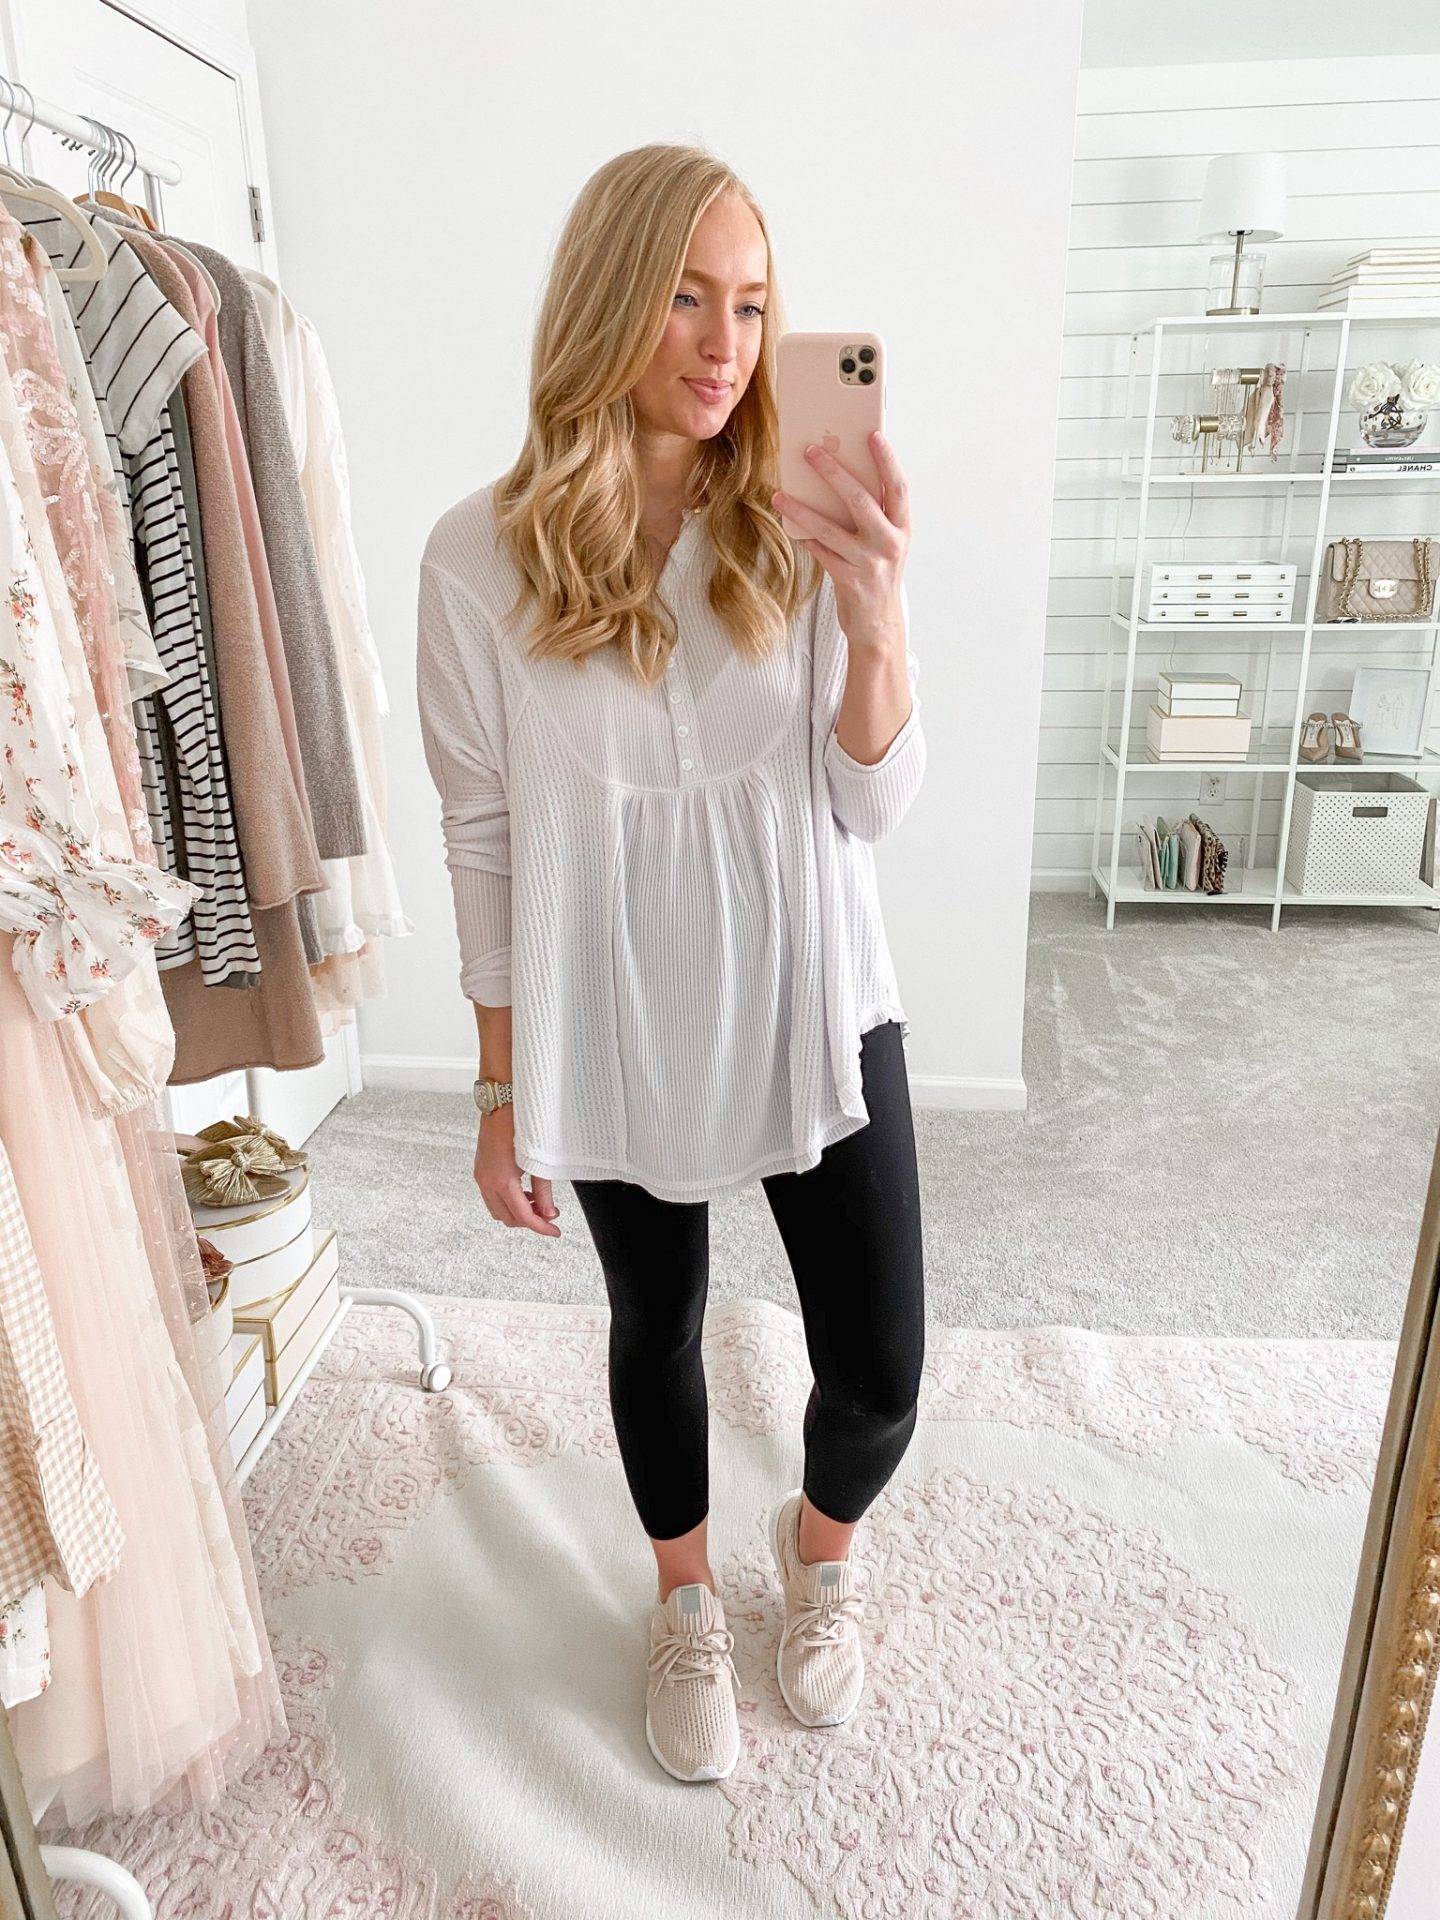 Black Leggings with a Tunic